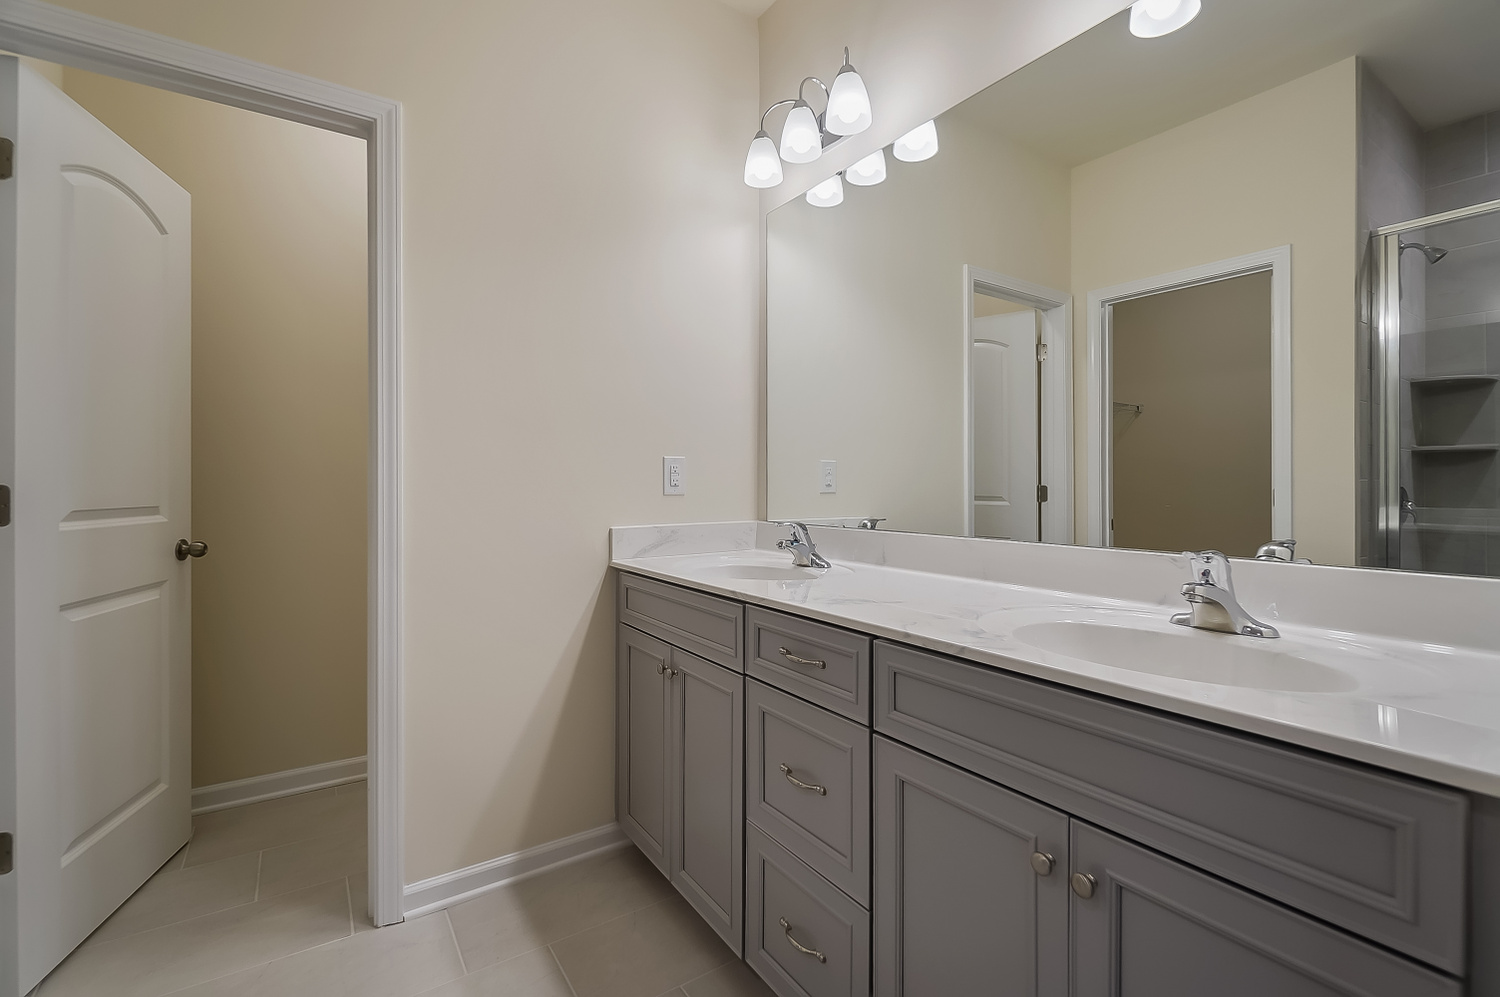 Caroline Plan Bathroom_Master Bath at Braeburn in Indian Trail North Carolina by Mattamy Homes